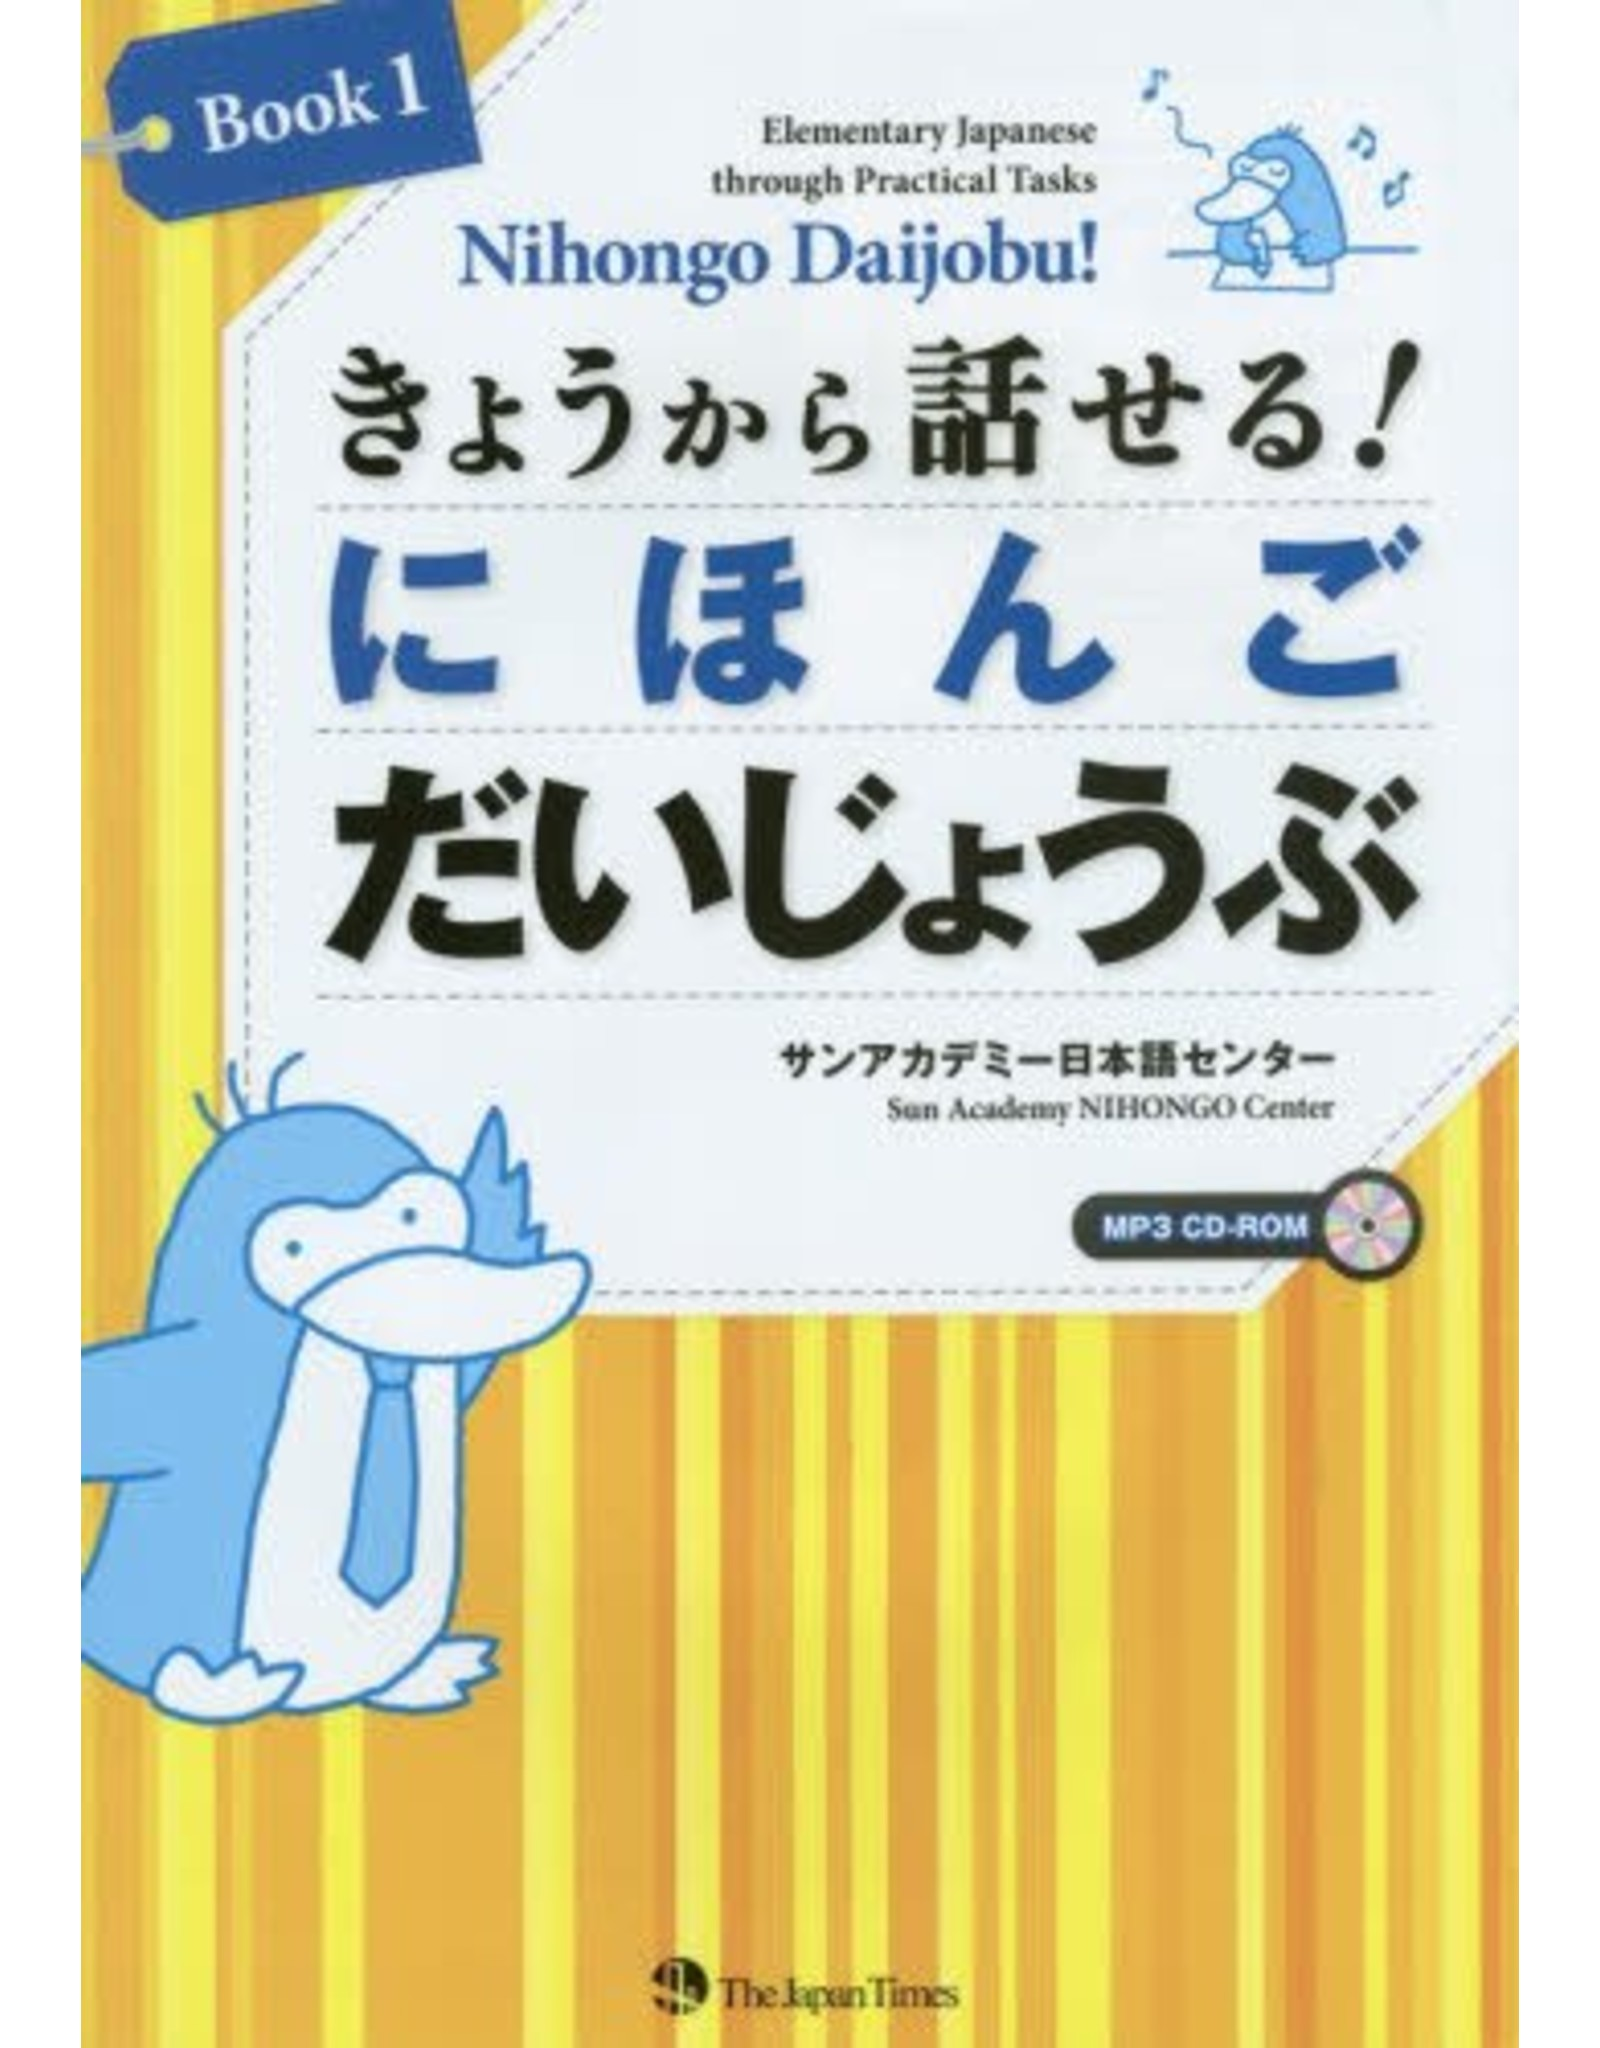 JAPAN TIMES NIHONGO DAIJOBU! BOOK 1 ELEMENTARY JAPANESE THROUGH PRACTICAL TASKS